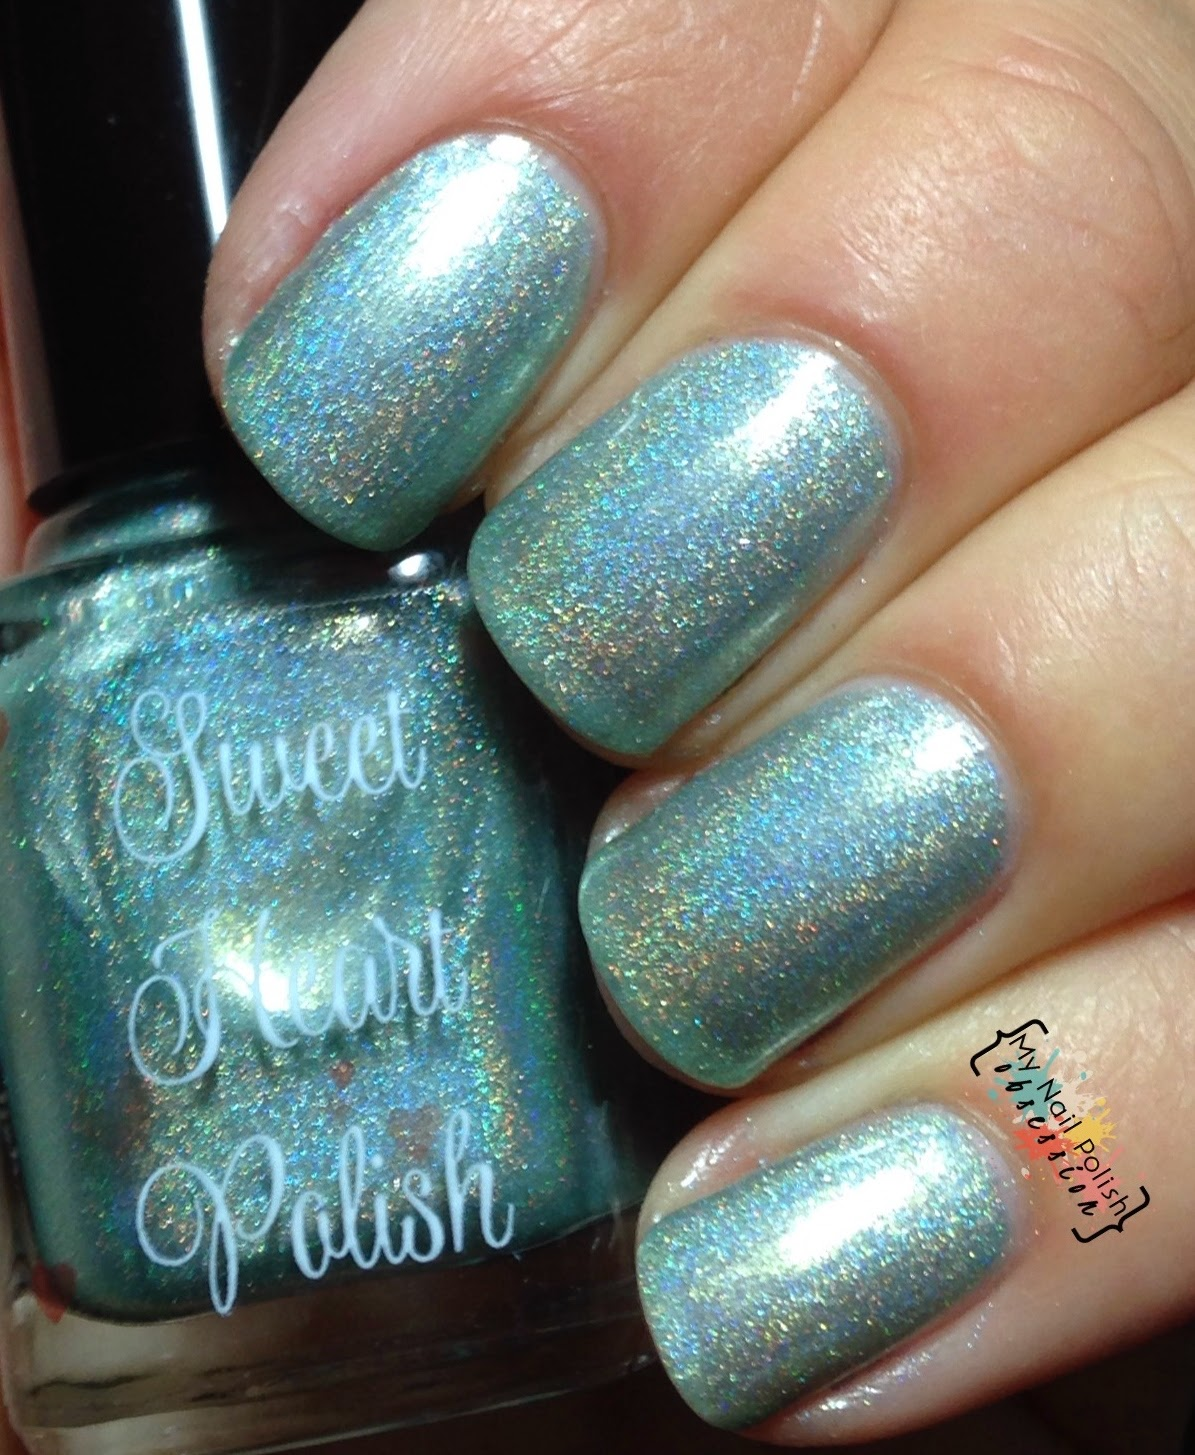 Sweet Heart Polish By Order of the Princess